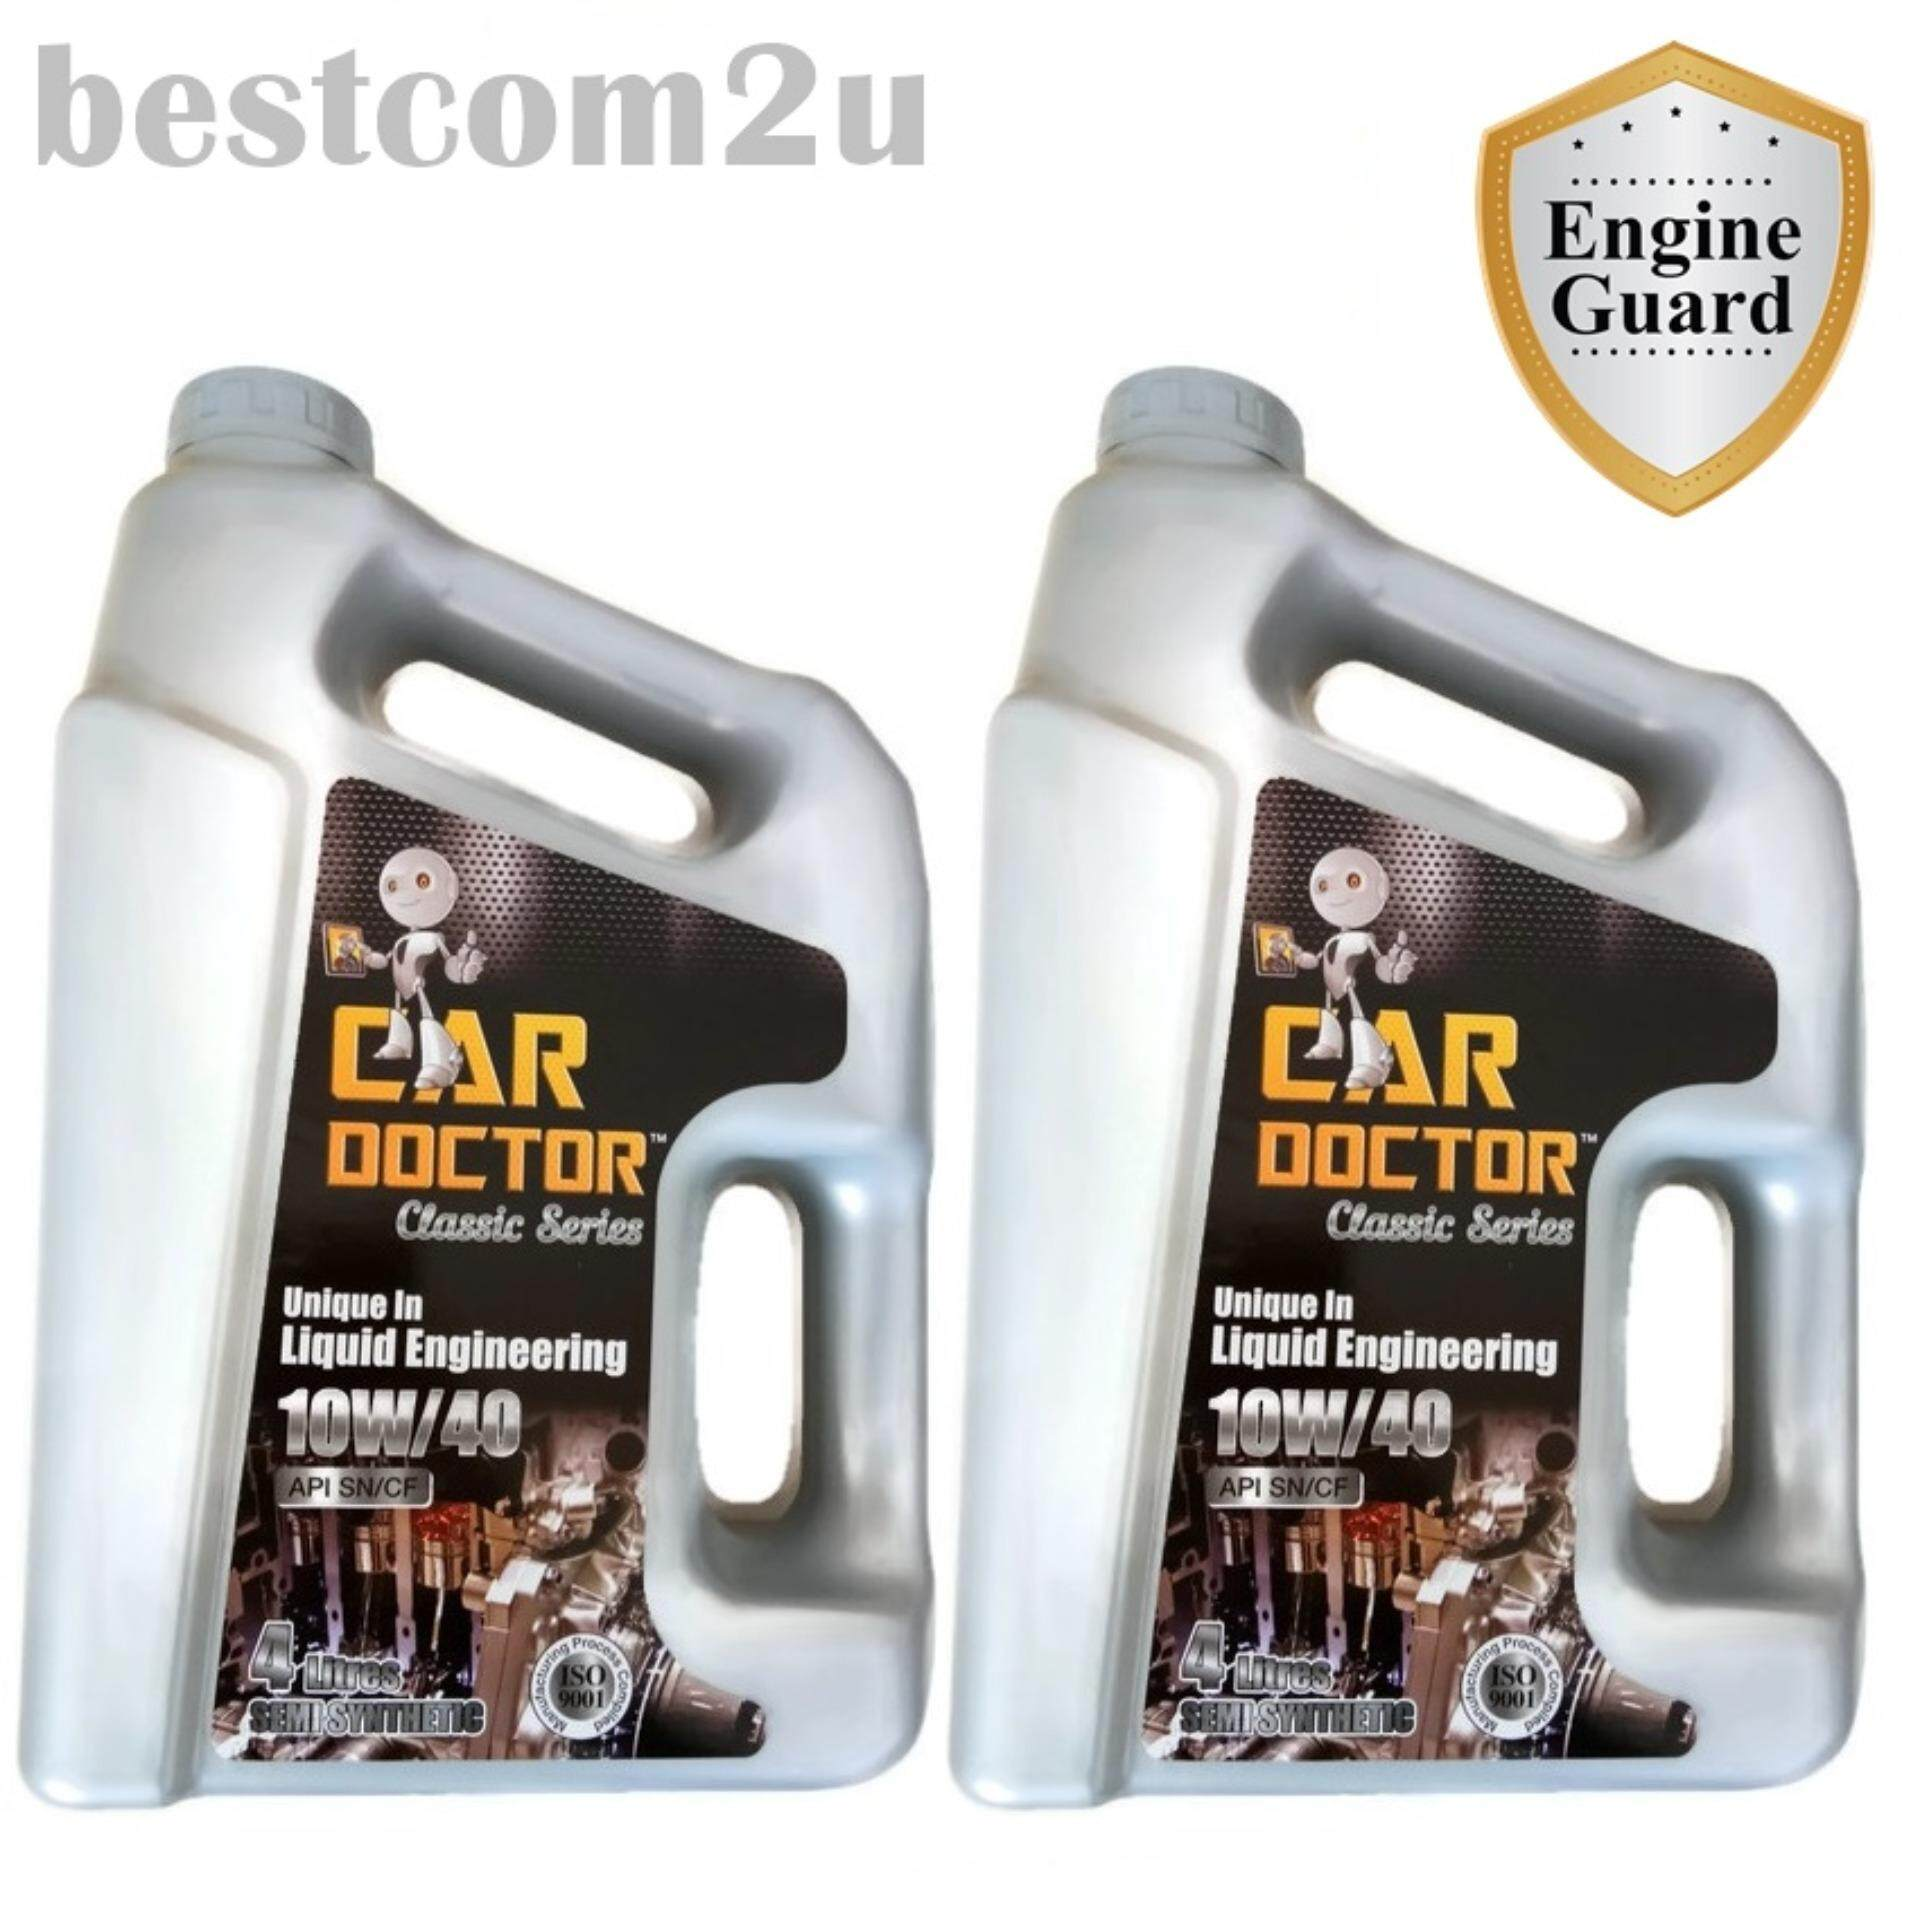 [2x] Car Doctor Classic Semi Synthetic 10W/40 API SN/CF (